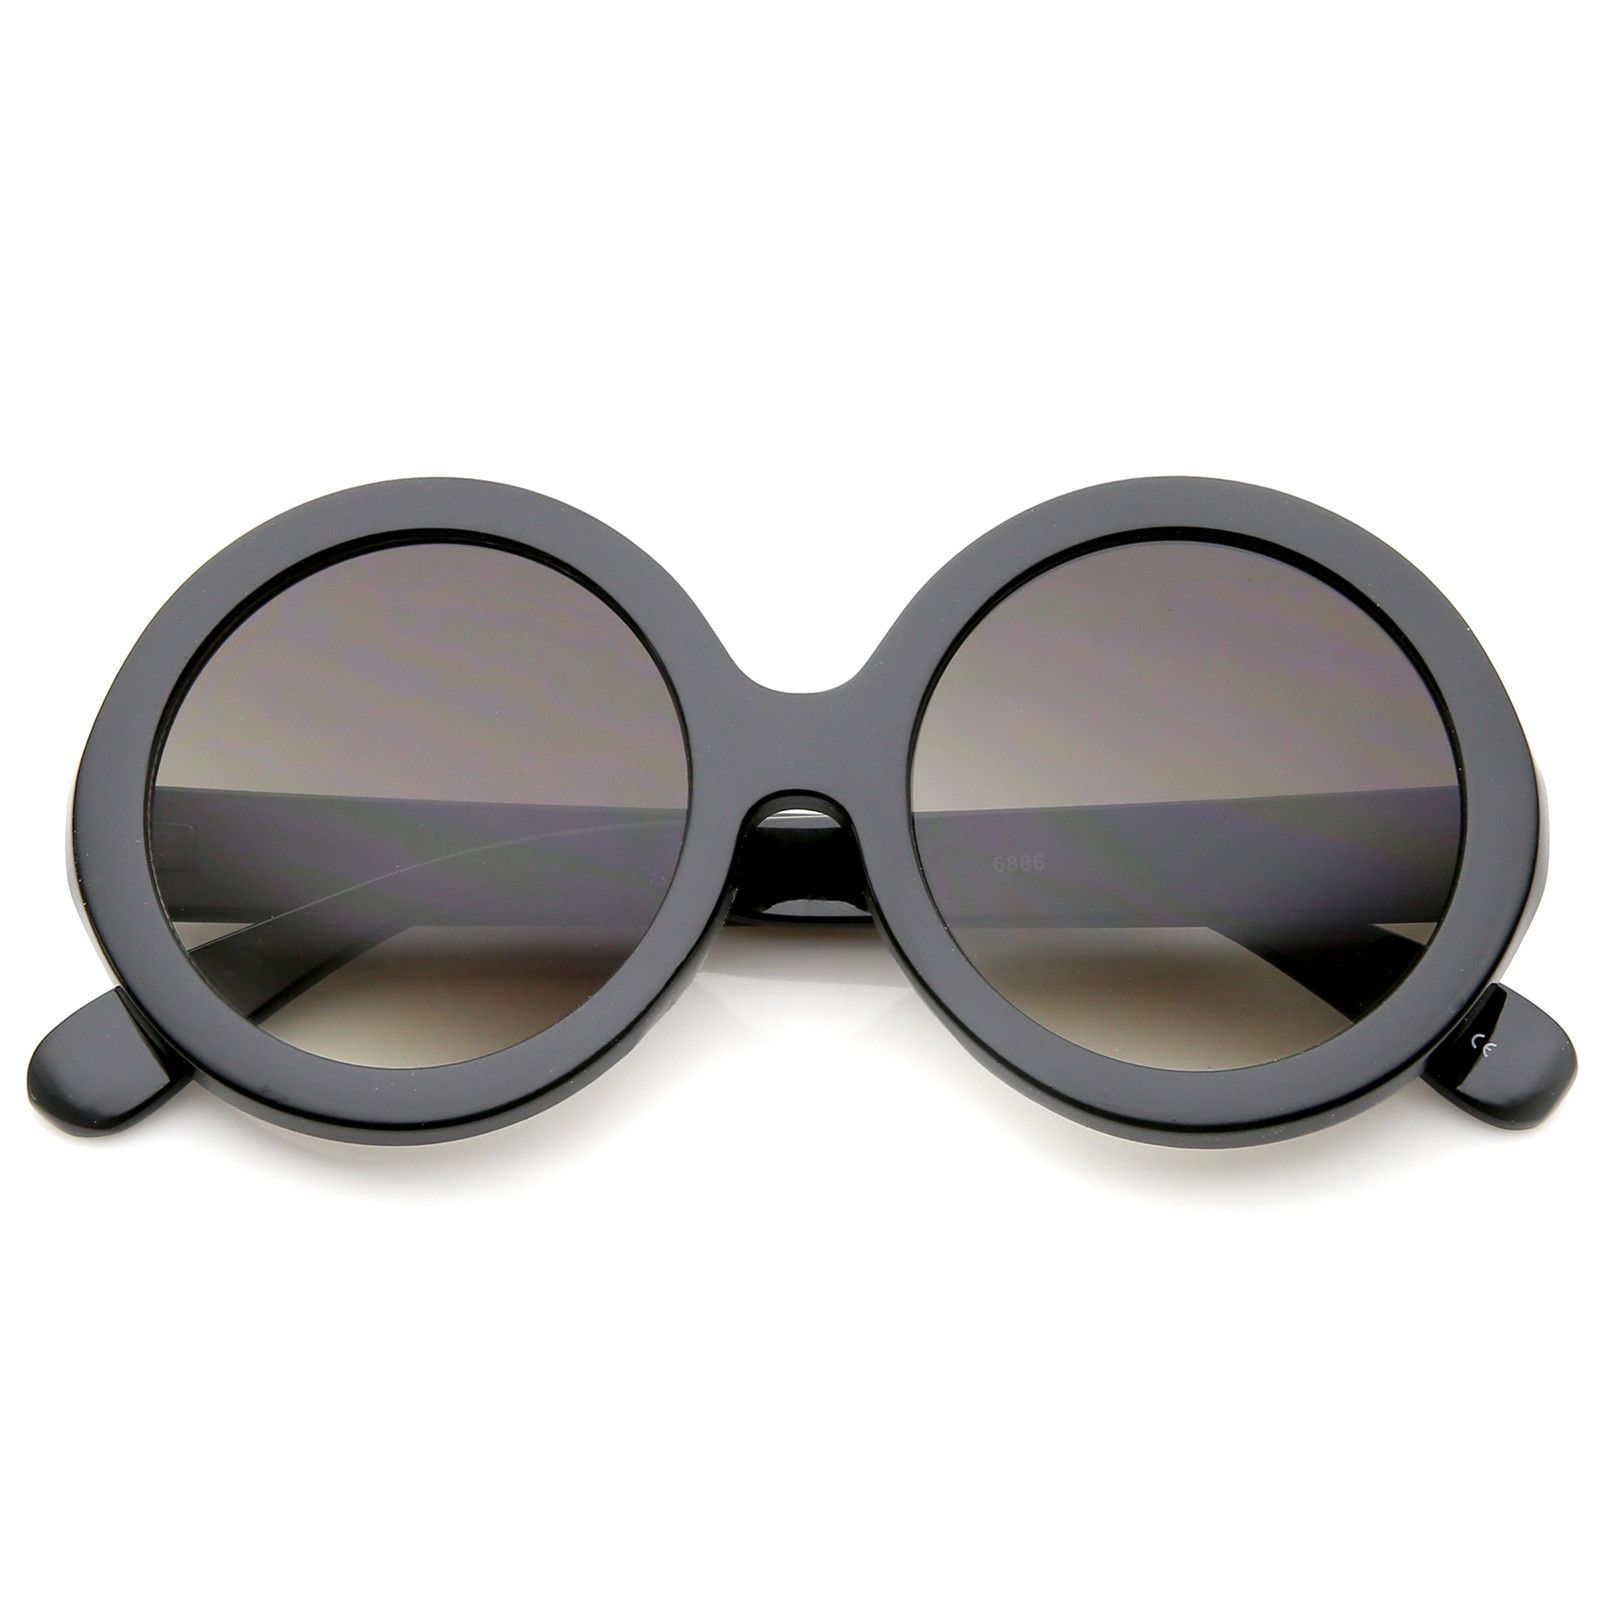 51ae2cc1d Retro Chunky Frame Tinted Lens Oversize Round Sunglasses 53mm #sunglass # sunglasses #bold #frame #sunglassla #mirrored #summer #oversized #clear  #womens